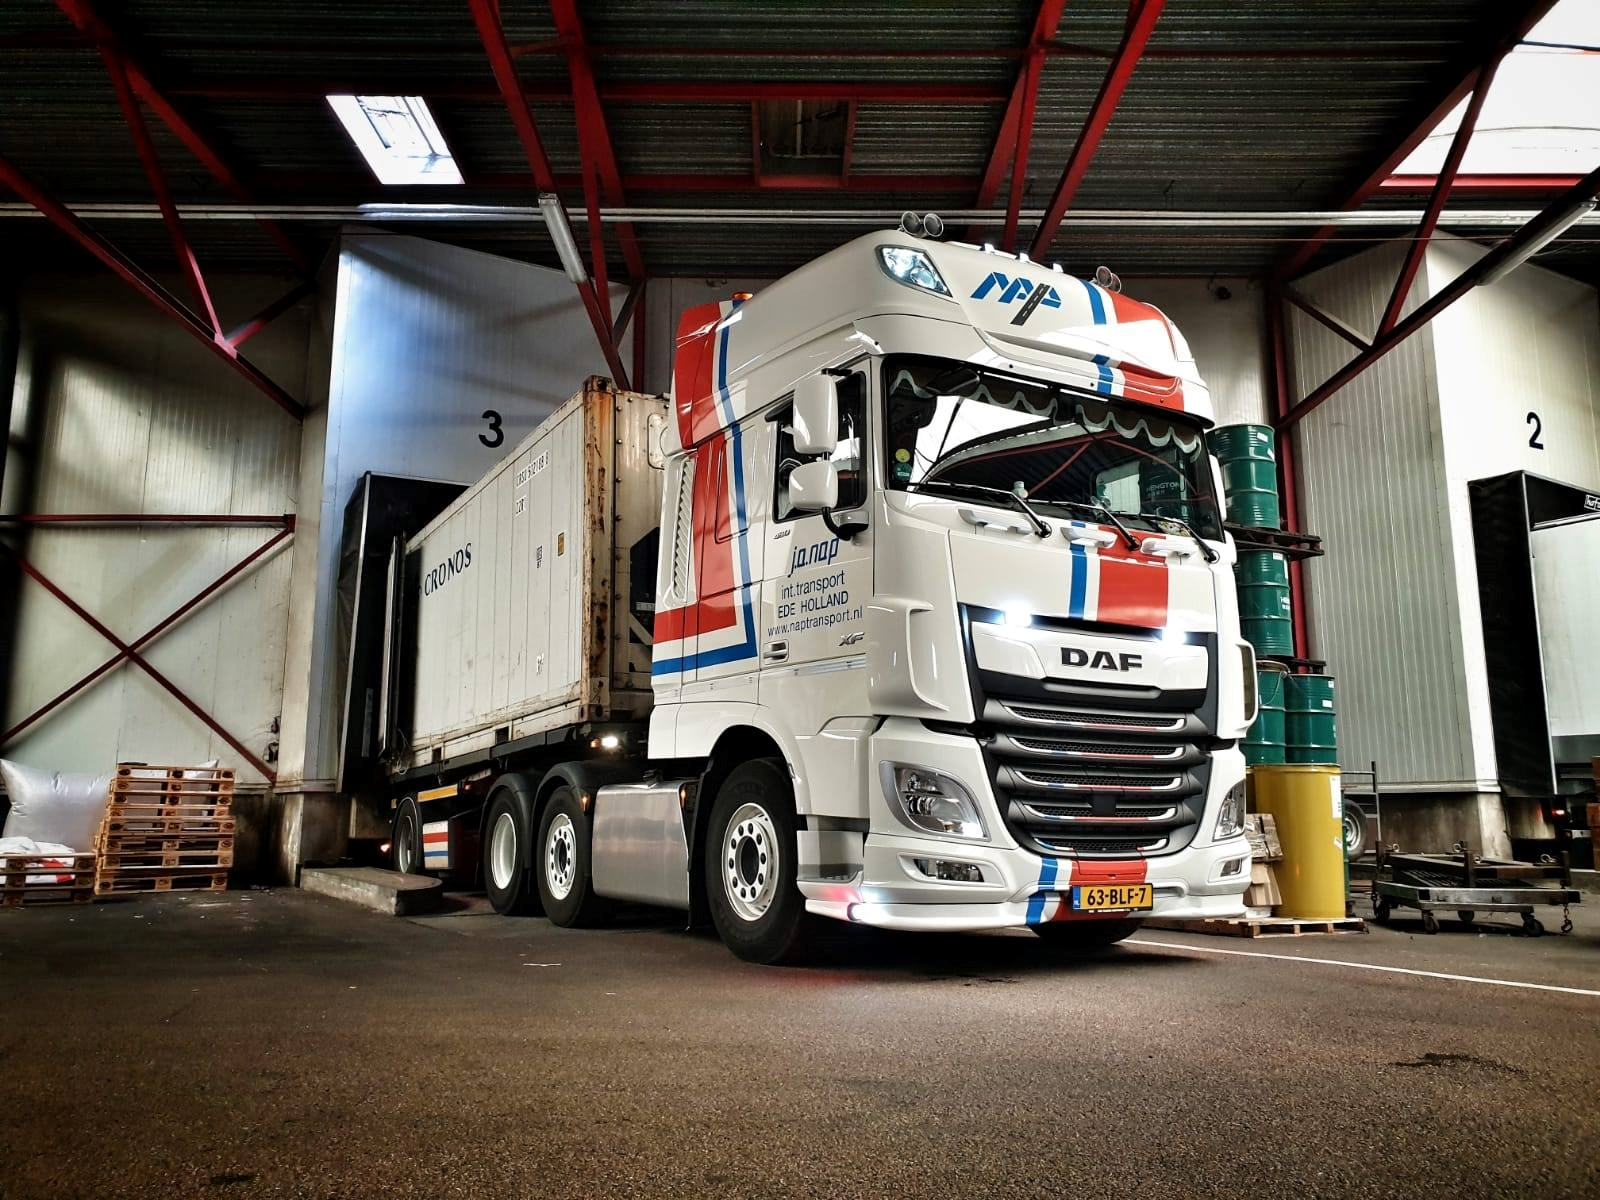 Innovaties: Nap Transport is er graag vroeg bij